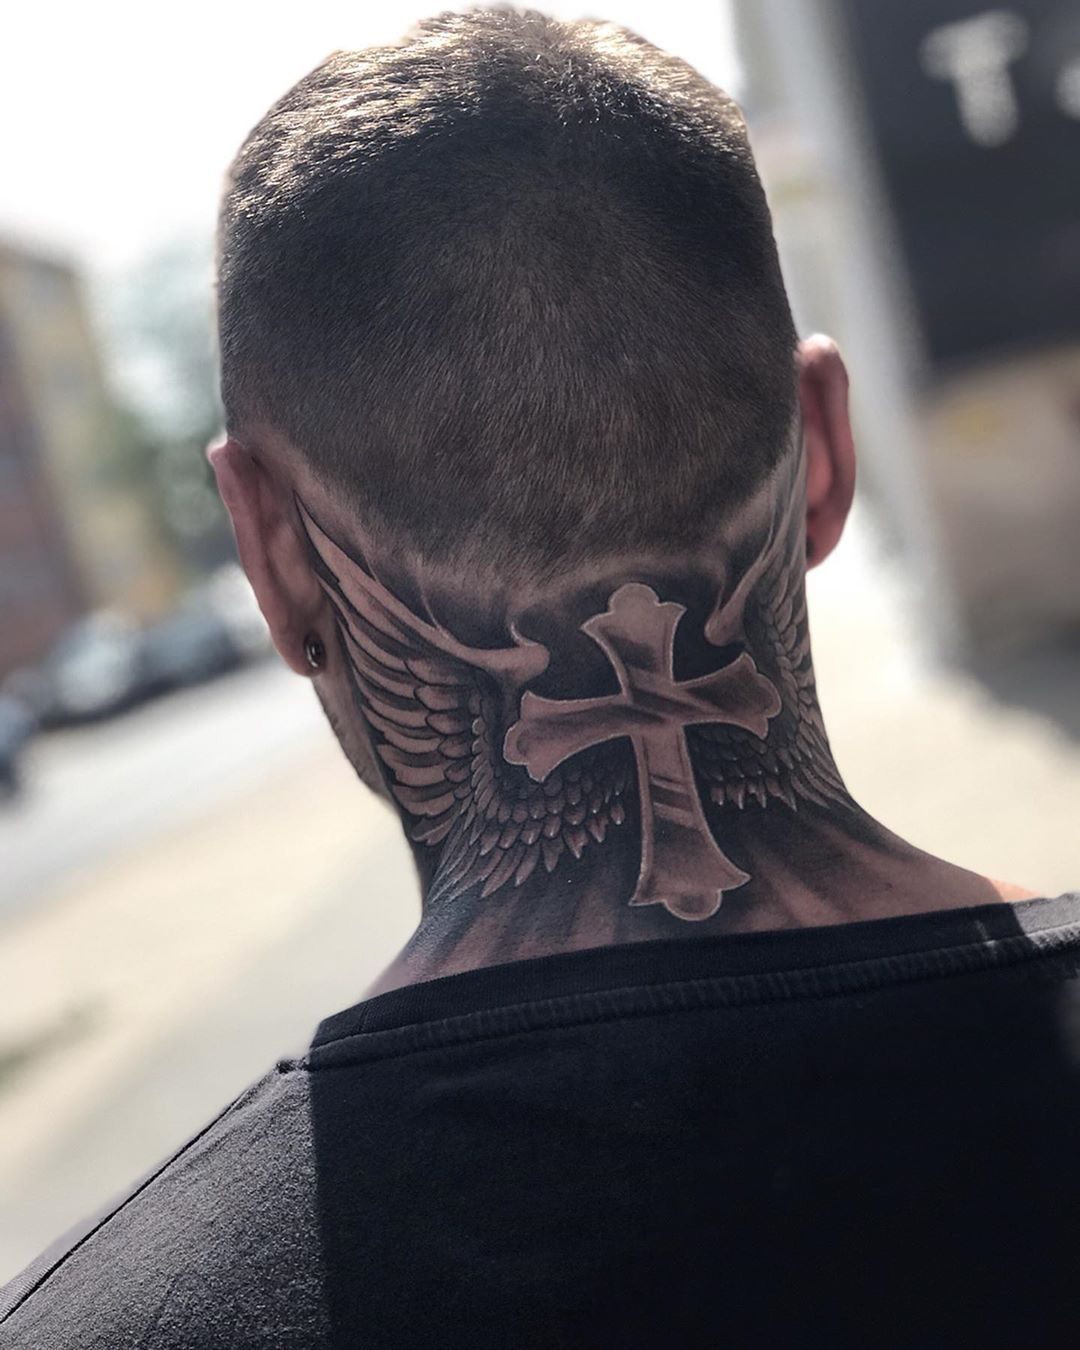 "☠︎Christian Berndt☠︎ on Instagram: ""✖️faith gives you wings✖️ . . . #inkedmen #faith #faithtattoo #faithful #religiontattoo #tattooed #tattoo #tattoos #tatts #inkedup…"" -  ☠︎Christian Berndt☠︎ on Instagram: ""✖️faith gives you wings✖️ . . . #inkedmen #fa - #Berndt #Christian #faith #faithful #faithtattoo #inkedmen #inkedup #Instagram #necktattoos #religiontattoo #sleevetattoos #strengthtattoo #Tattoo #tattoodesigns #tattooink #tattooed #Tattoos #Tatts #temporarytattoodiy #Wings"